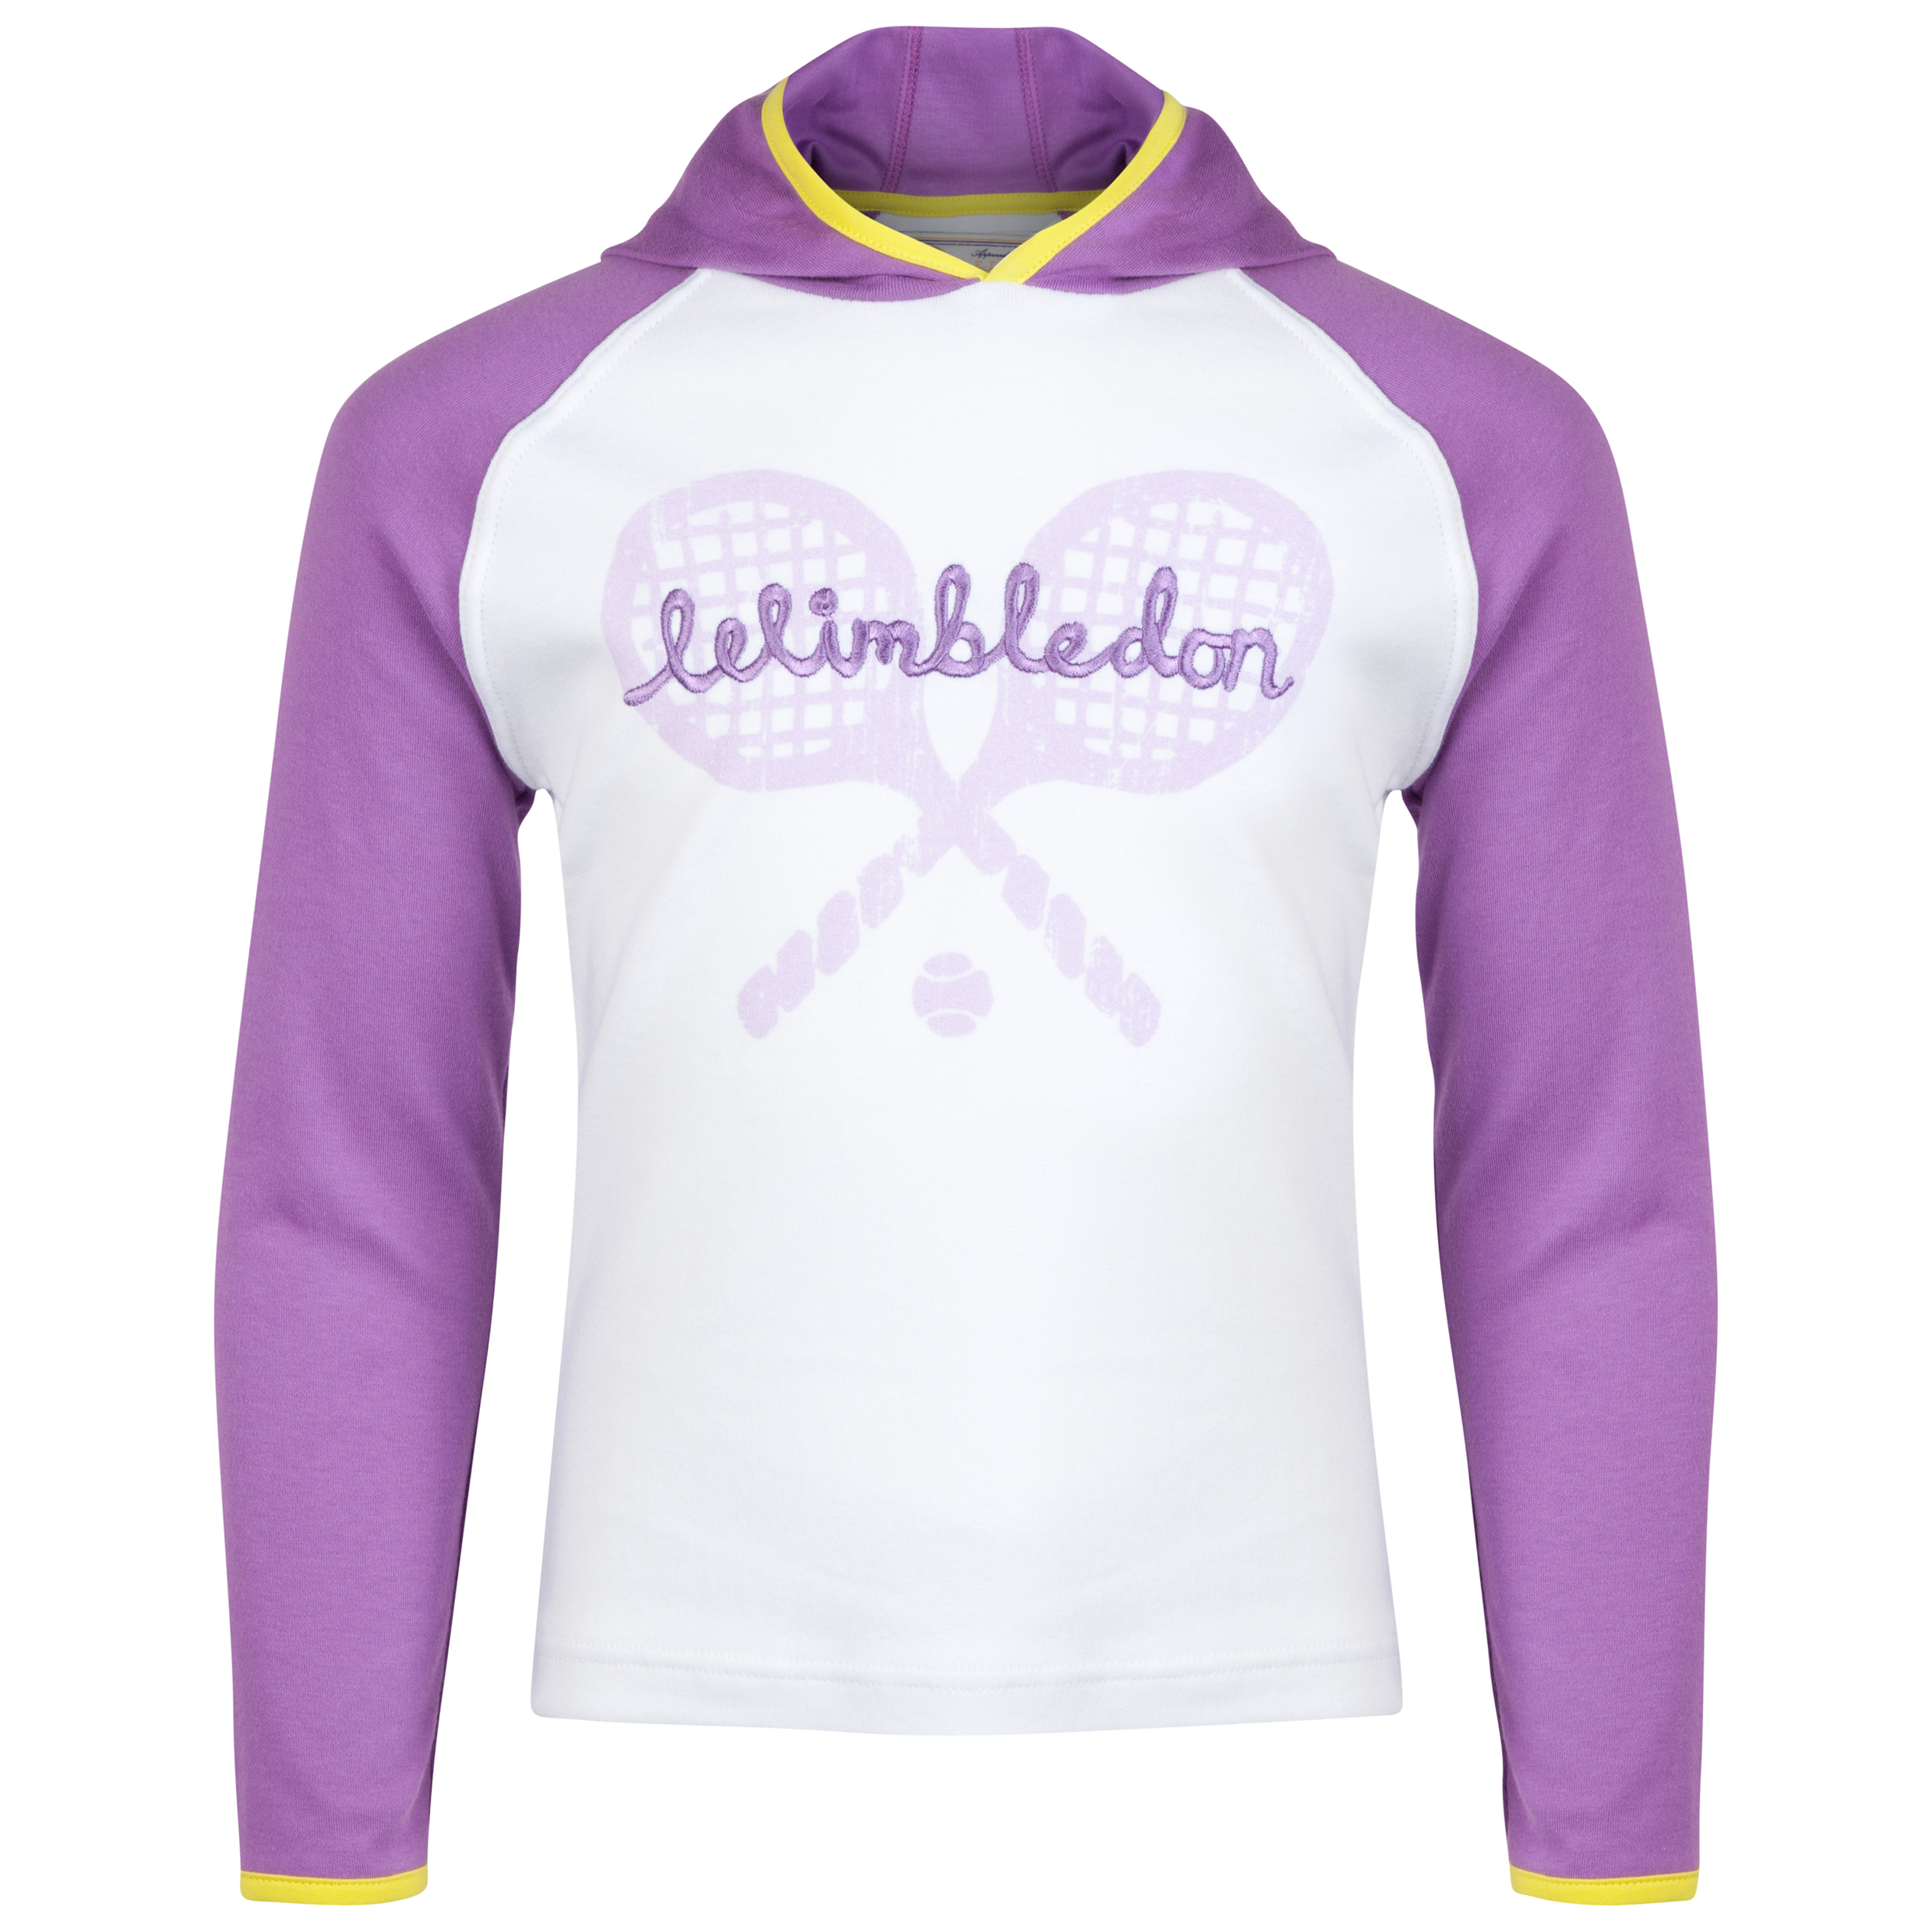 Wimbledon Printed Rackets Hoody - Girls